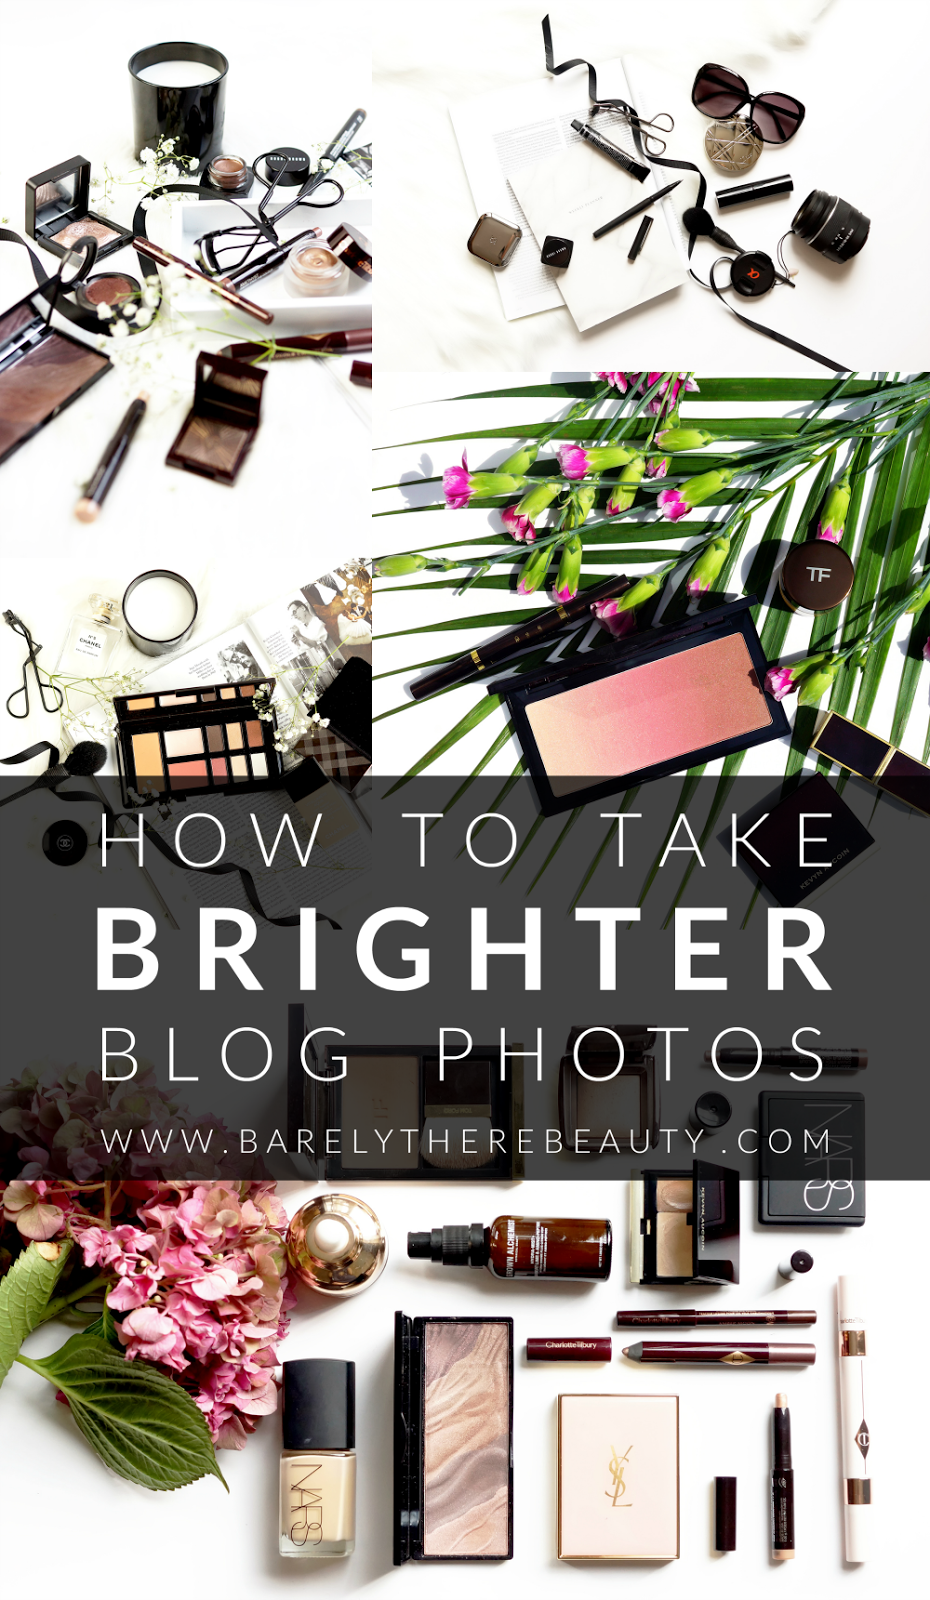 11 TIPS FOR TAKING BRIGHTER BLOG PHOTOS THIS WINTER